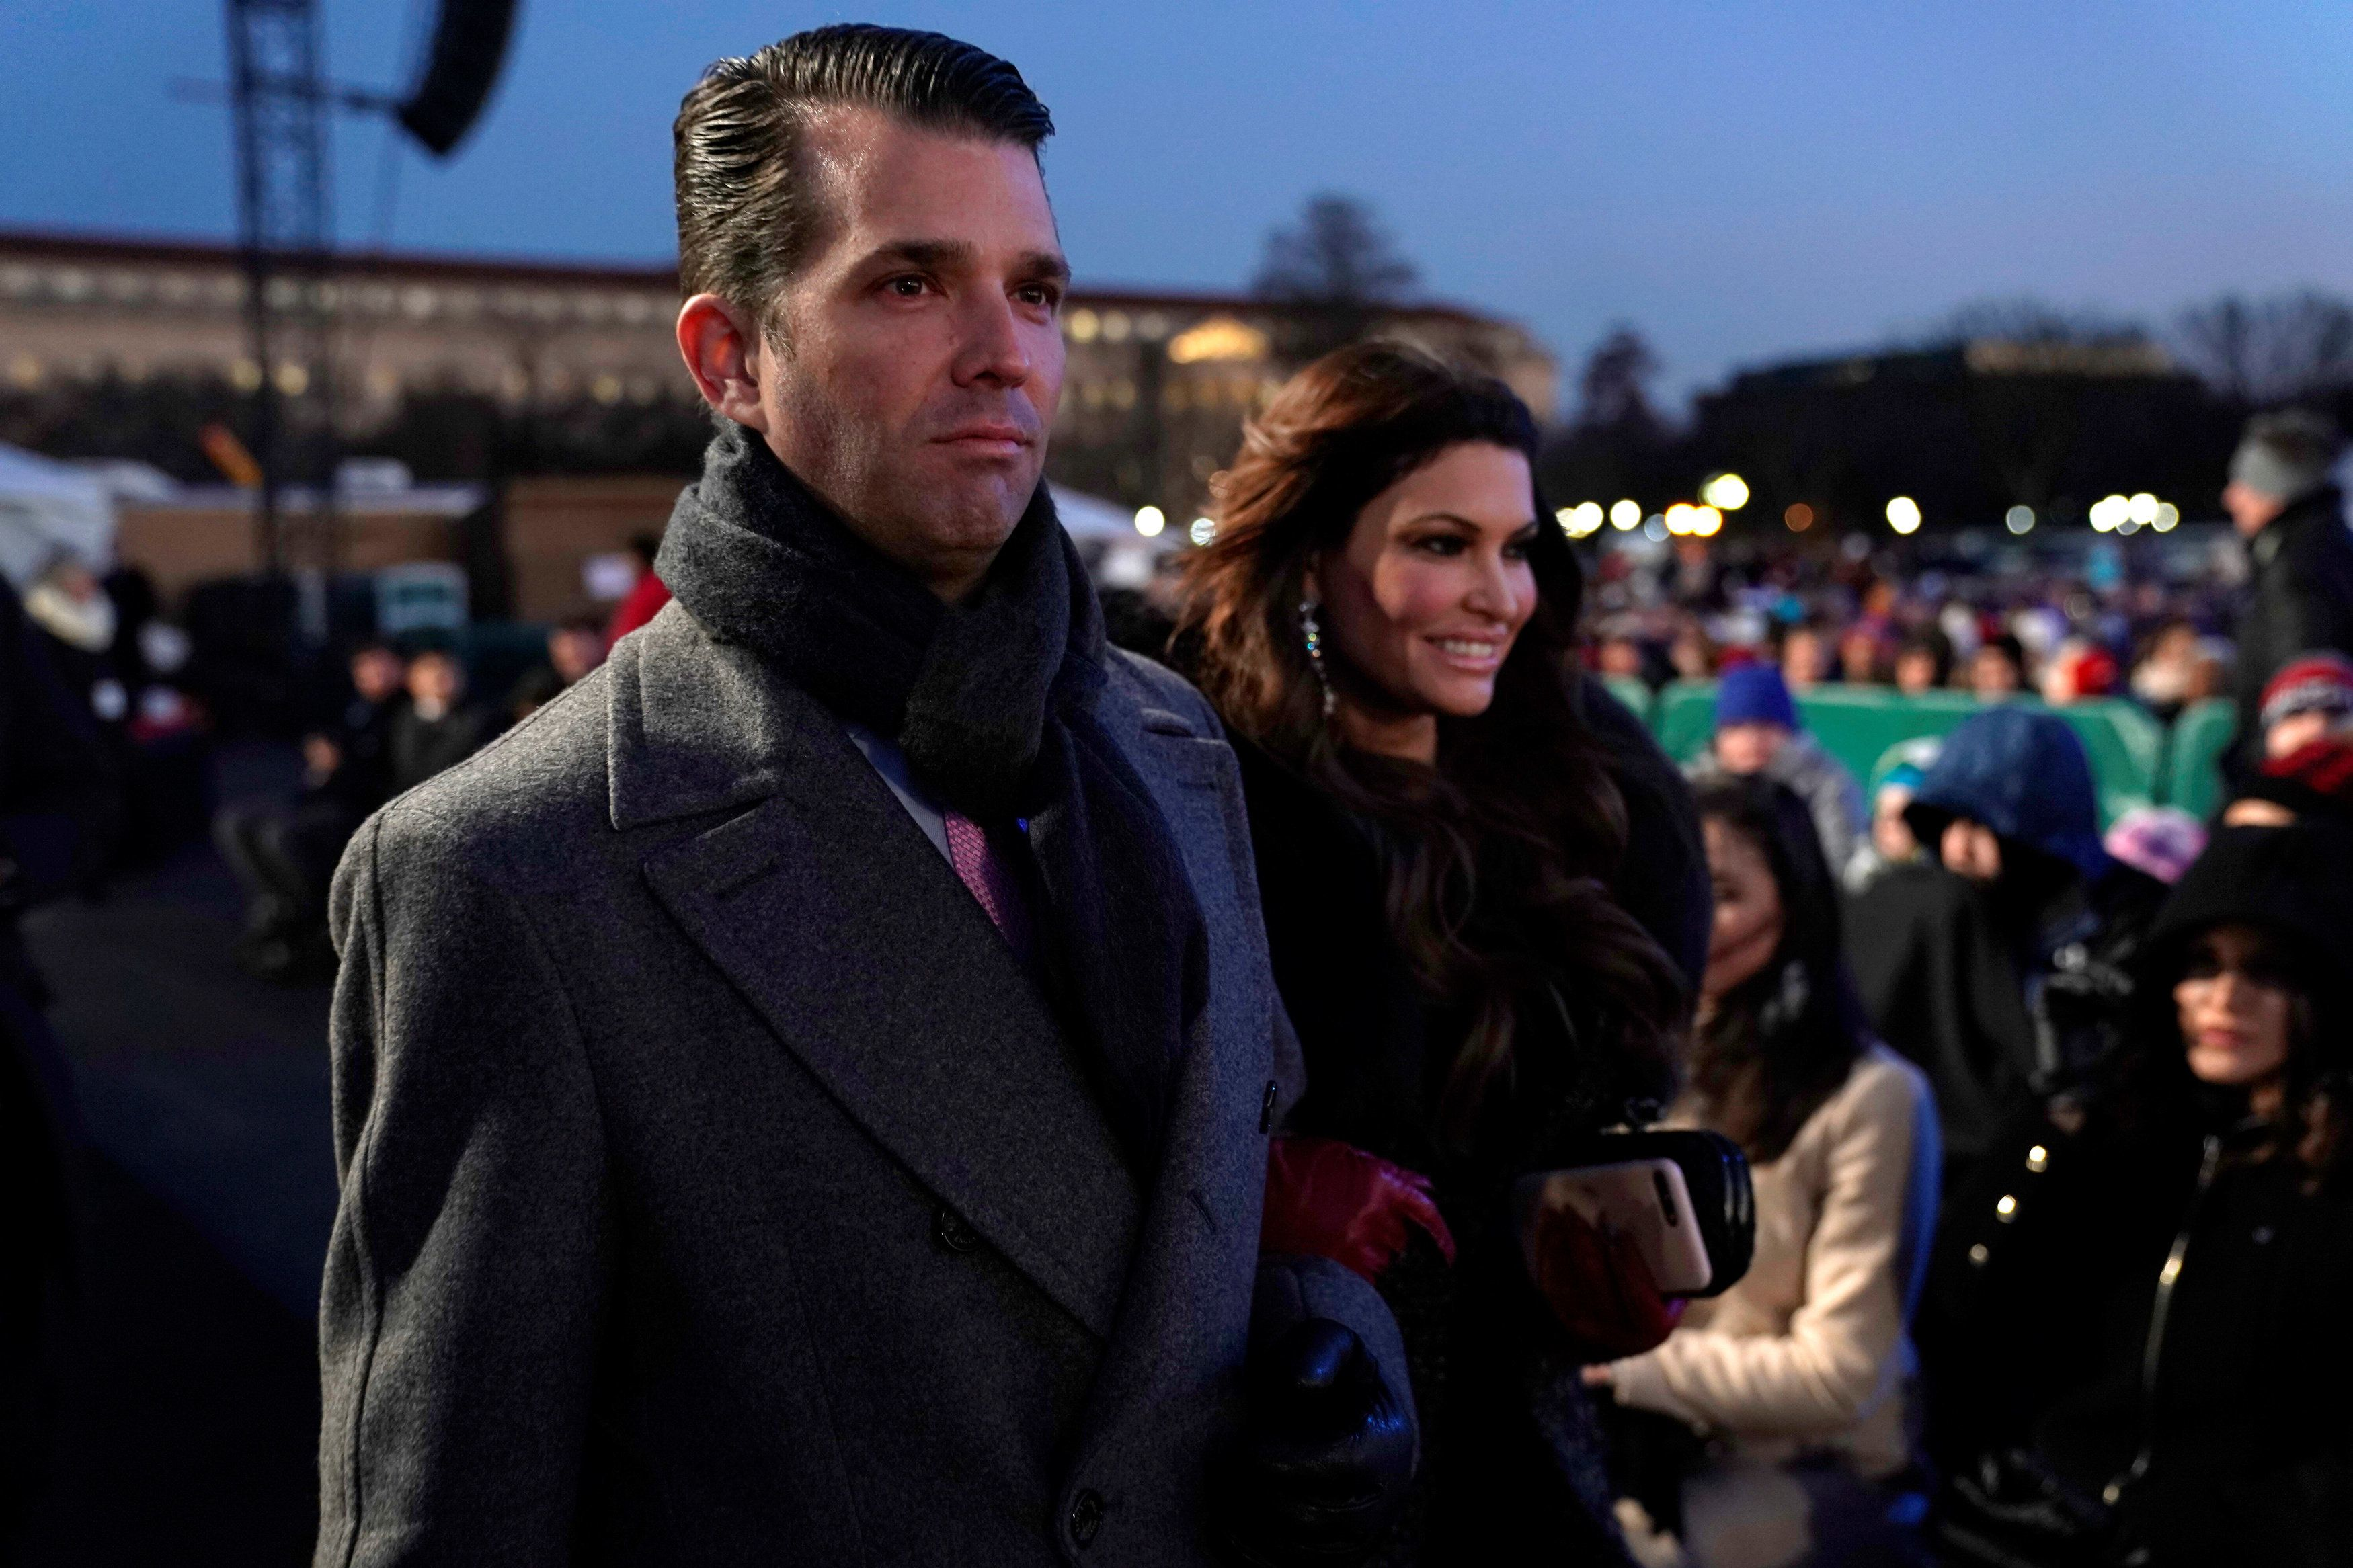 Donald Trump Jr. and his girlfriend Kimberly Guilfoyle arrive to watch his father U.S. President Donald Trump at the 96th annual National Christmas Tree Lighting ceremony near the White House in Washington, U.S., November 28, 2018. REUTERS/Jonathan Ernst